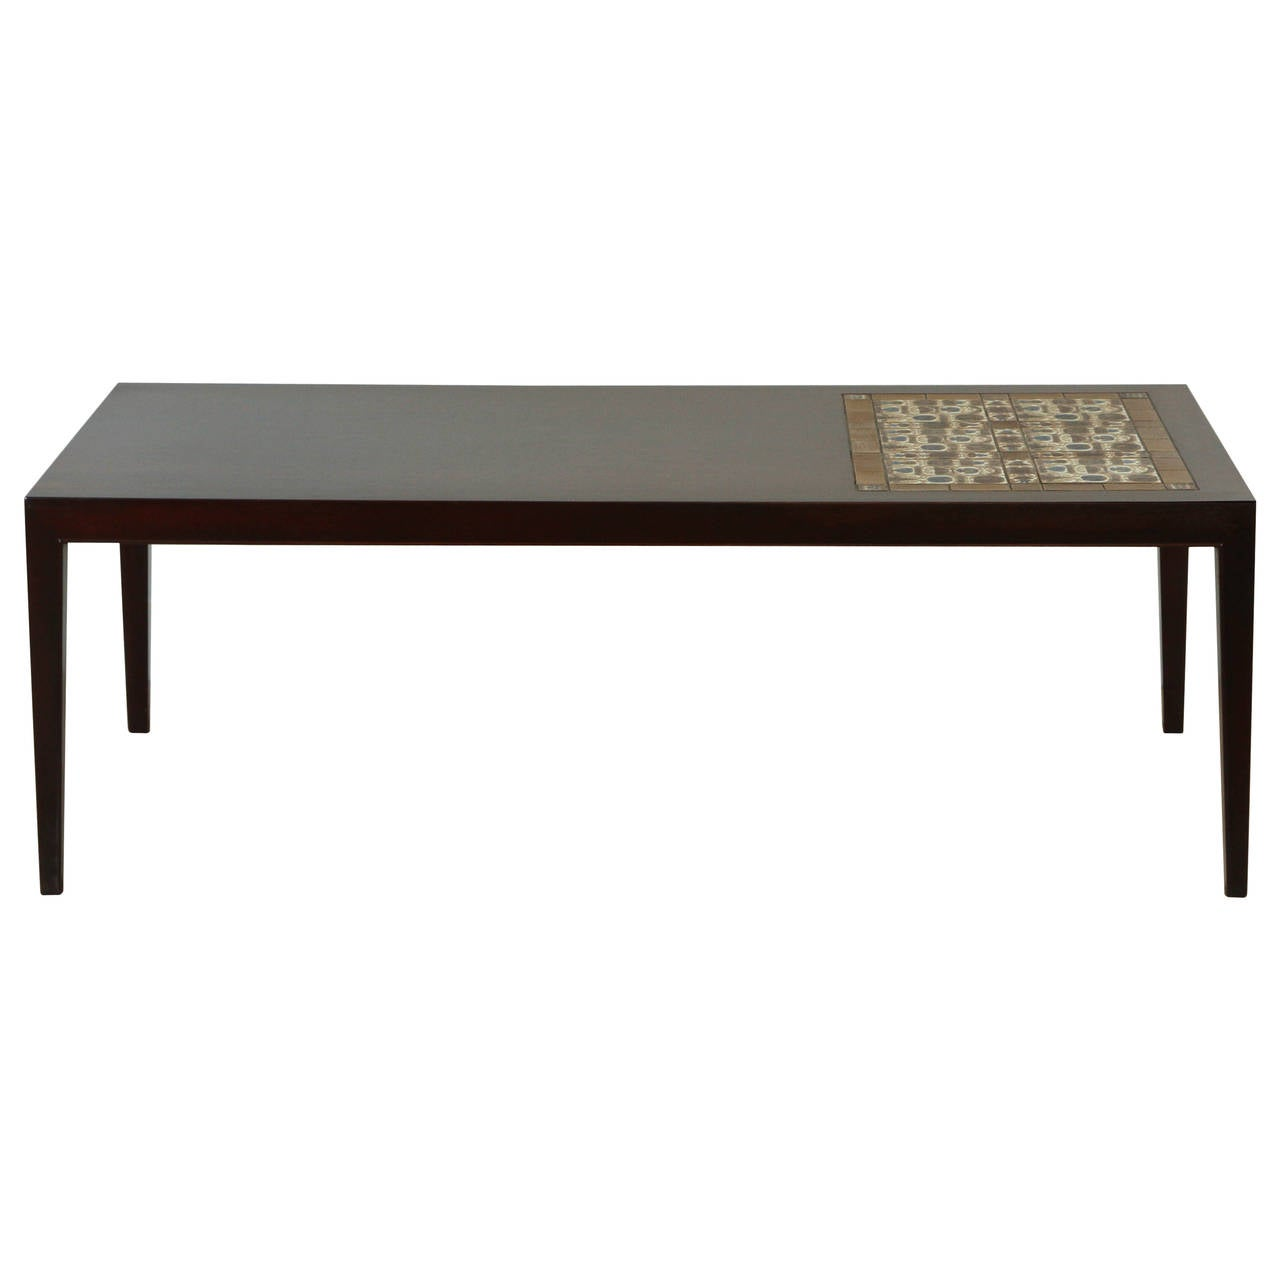 Danish Rosewood And Mosaic Tile Top Coffee Table By Severin Hansen For Sale At 1stdibs